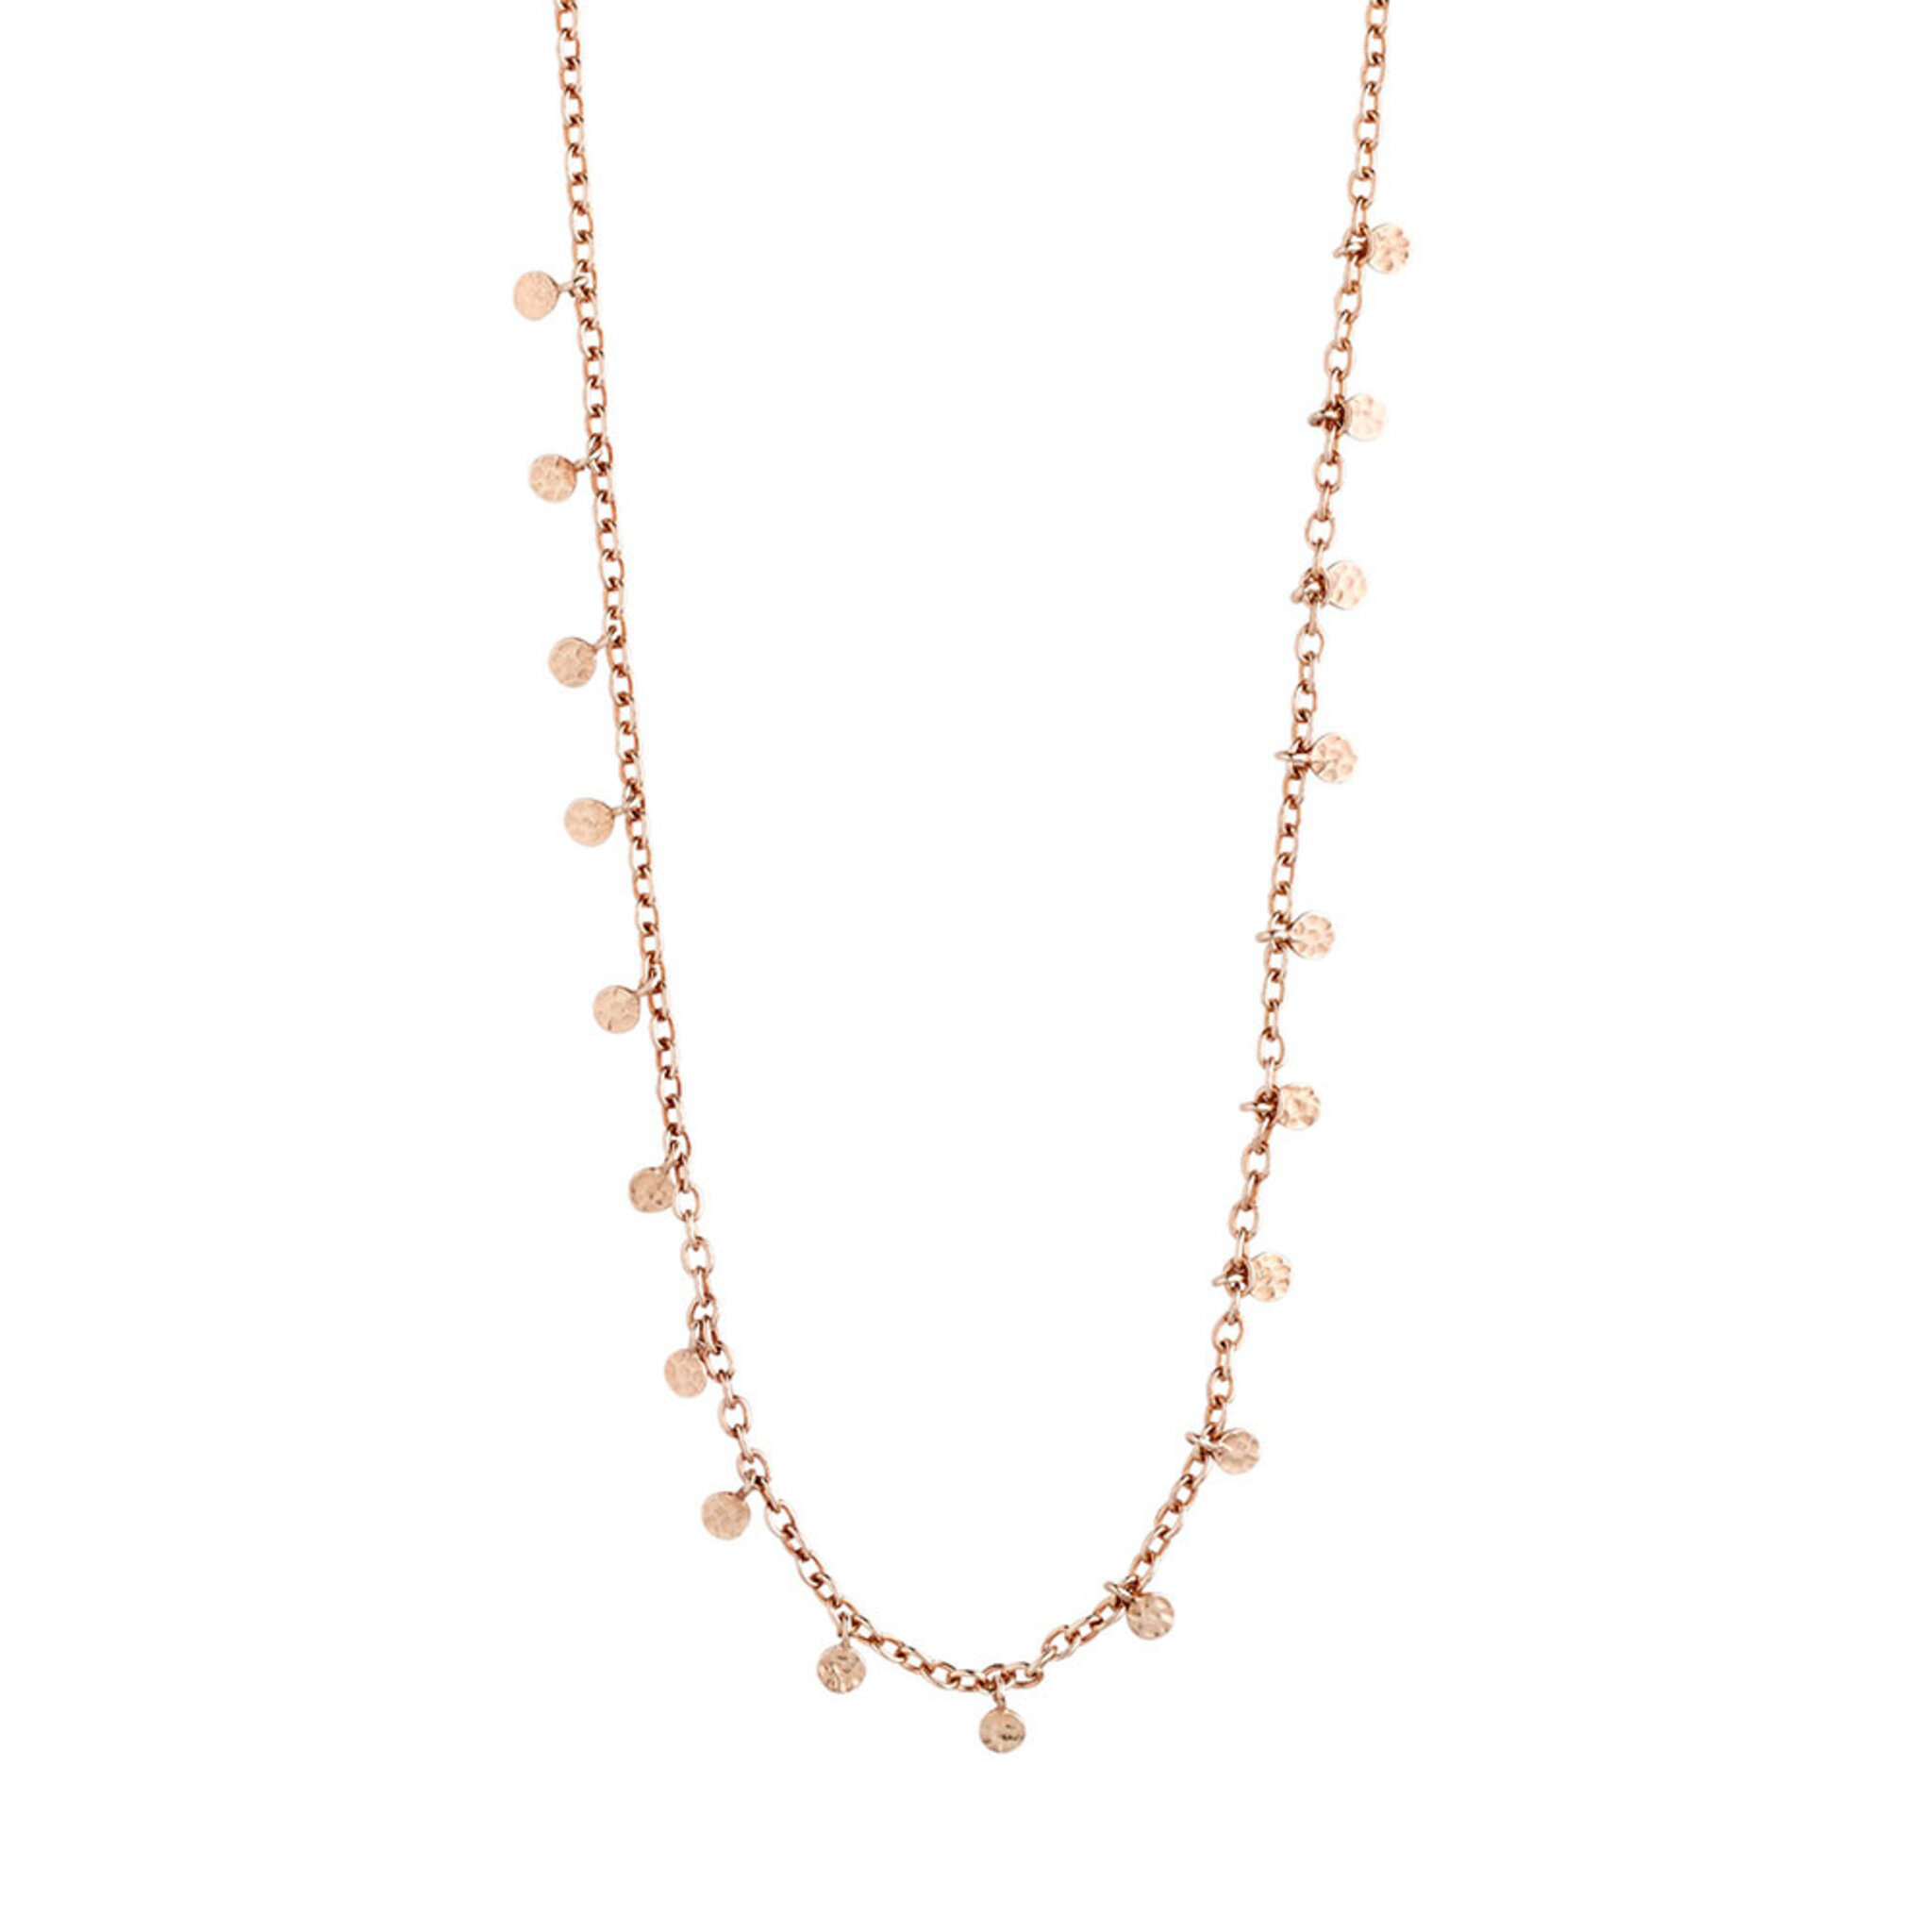 Necklace : Panna : Rose Gold Plated, ONE SIZE